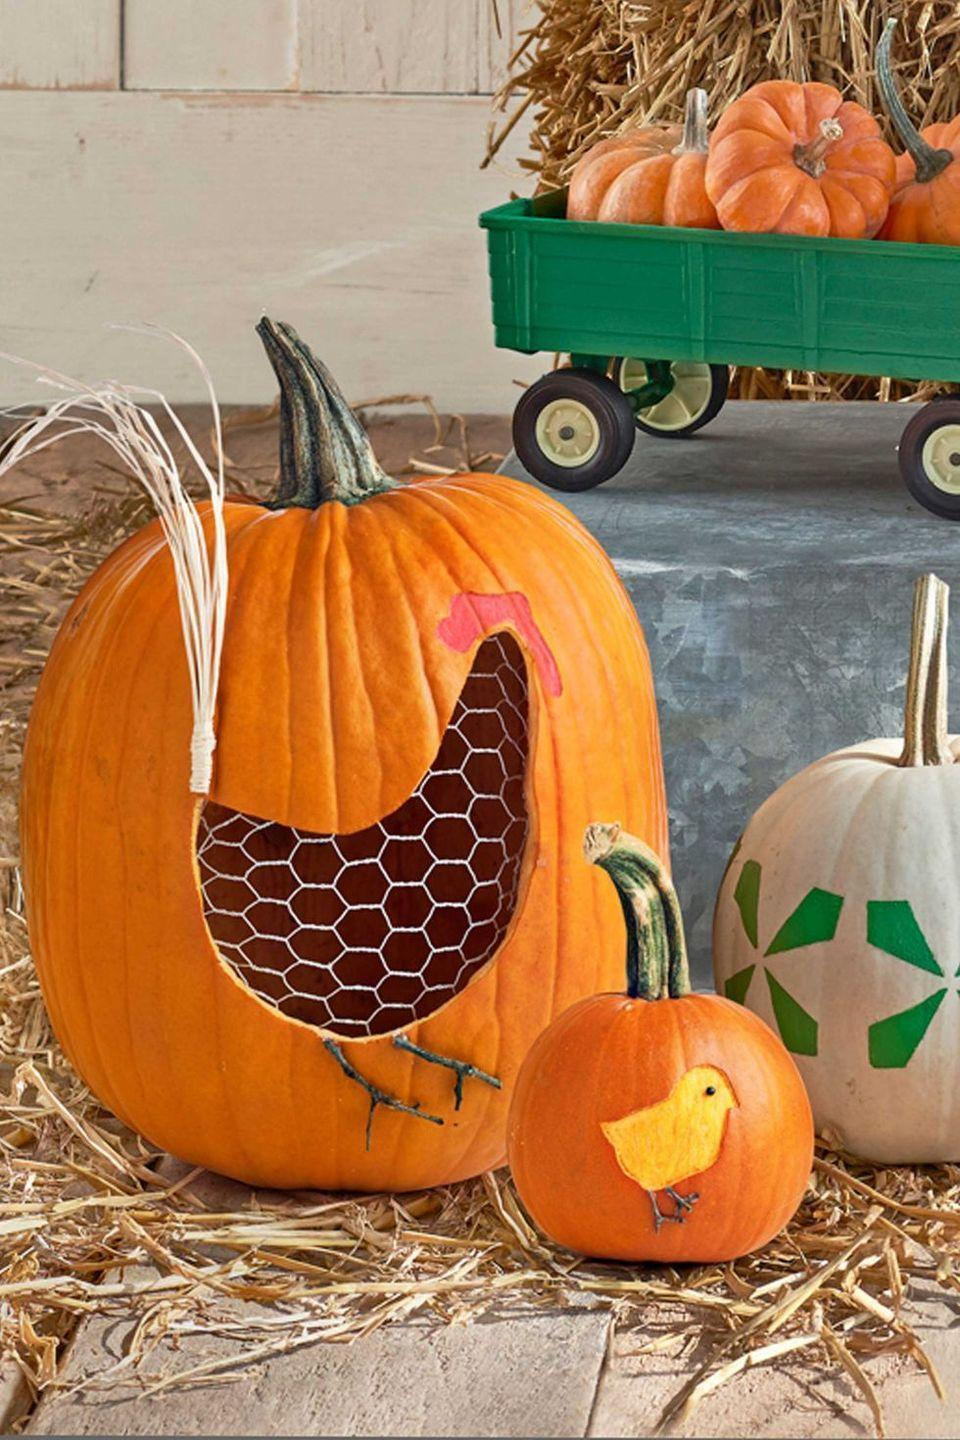 "<p>Use a stencil to cutout the rooster's main shape and then put chicken wire inside the pumpkin to finish off the look. Secure the wire with hot glue, and use the glue to attach a few strands of raffia to create some tail feathers. Paint some details, and prepare to proudly display this farm-inspired masterpiece. </p><p><strong><em>Get the tutorial at <a href=""http://clv.h-cdn.co/assets/downloads/1472485017_-_pumpkintemplates.pdf"" rel=""nofollow noopener"" target=""_blank"" data-ylk=""slk:Country Living."" class=""link rapid-noclick-resp"">Country Living.</a> </em></strong></p><p><strong>What You'll Need: </strong><a href=""https://www.amazon.com/SATINIOR-Sheets-Chicken-Galvanized-Hexagonal/dp/B07XM664RY/ref=sr_1_1_sspa?dchild=1&keywords=chicken+wire&qid=1594068622&sr=8-1-spons&psc=1&spLa=ZW5jcnlwdGVkUXVhbGlmaWVyPUExUUE0RU0xRUtGODFDJmVuY3J5cHRlZElkPUEwOTI4NTk0M1RPTlc1OFo2WFBVSSZlbmNyeXB0ZWRBZElkPUEwNzk3NzY3MTdFRUxZNjBHMUxNTiZ3aWRnZXROYW1lPXNwX2F0ZiZhY3Rpb249Y2xpY2tSZWRpcmVjdCZkb05vdExvZ0NsaWNrPXRydWU="" rel=""nofollow noopener"" target=""_blank"" data-ylk=""slk:Chicken wire"" class=""link rapid-noclick-resp"">Chicken wire</a> ($17, Amazon) </p>"